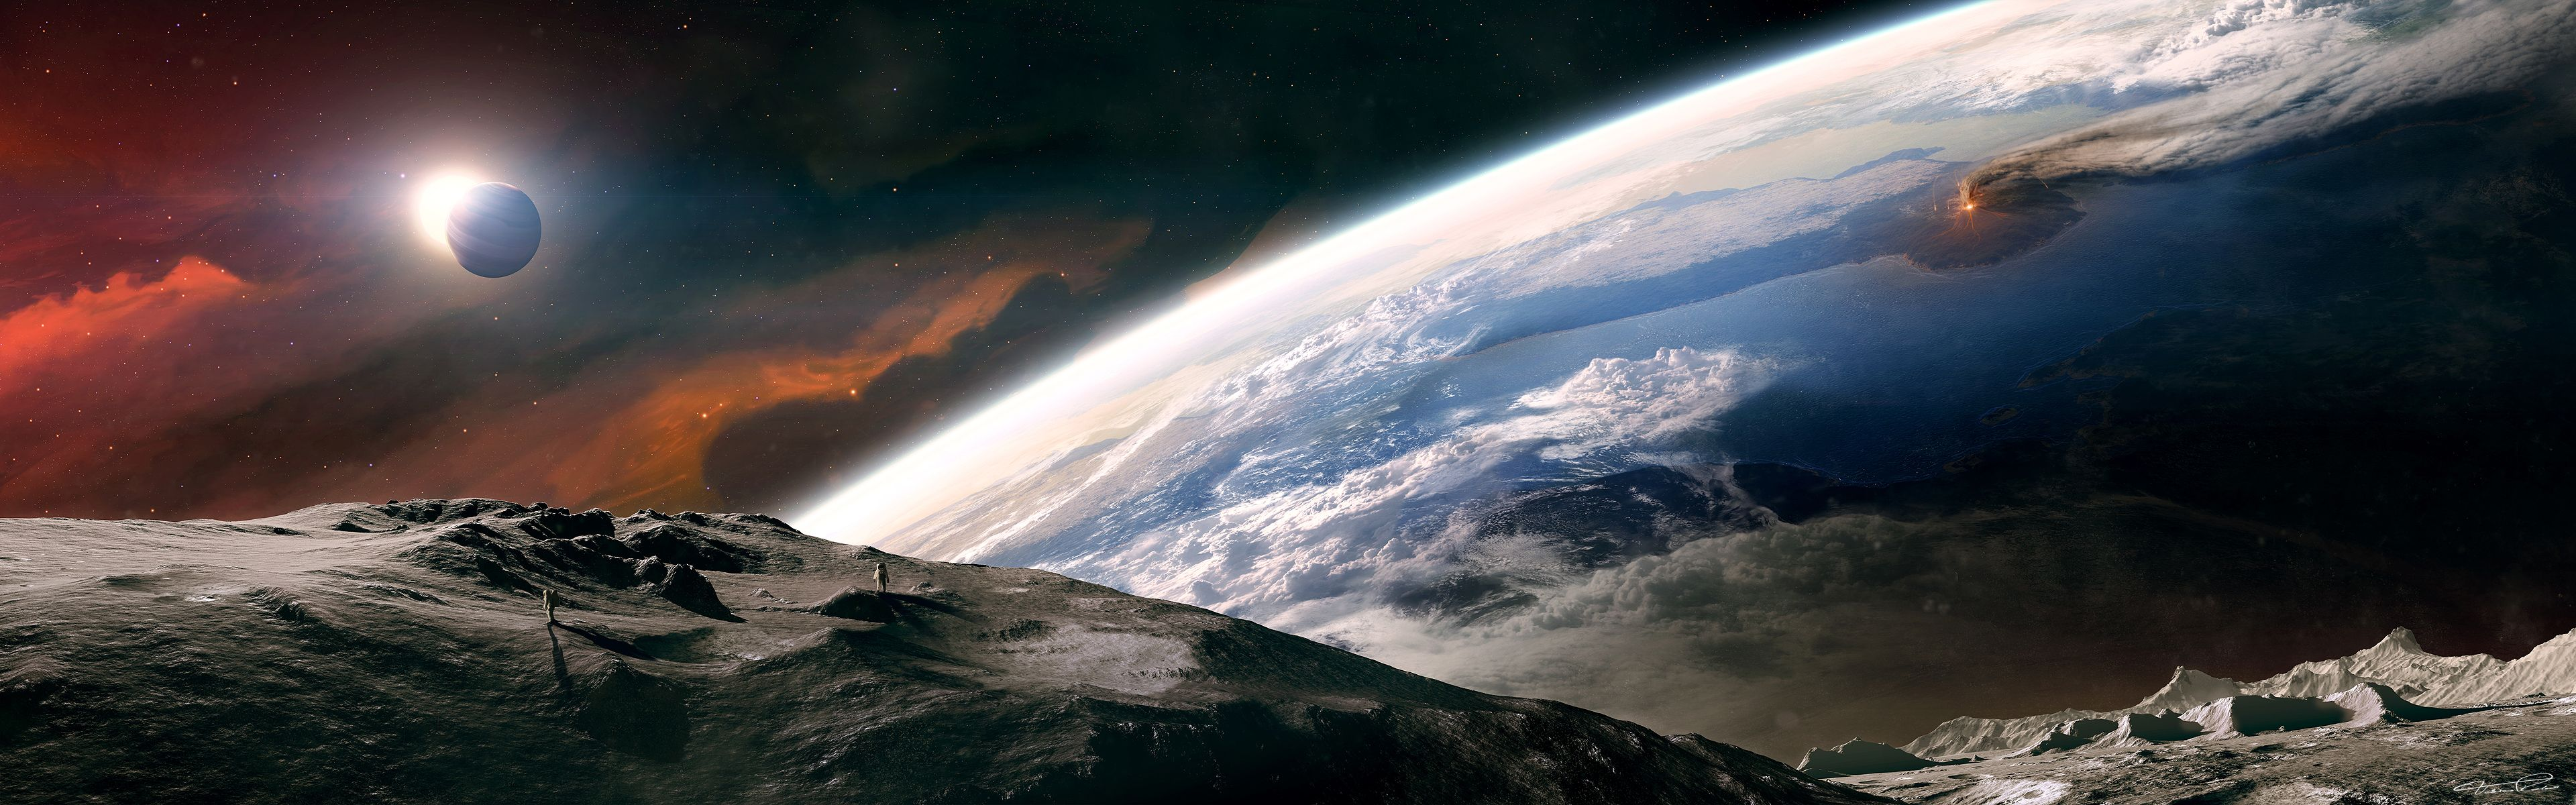 3d Space Scene Dual Screen Wallpaper 157366 Resolution